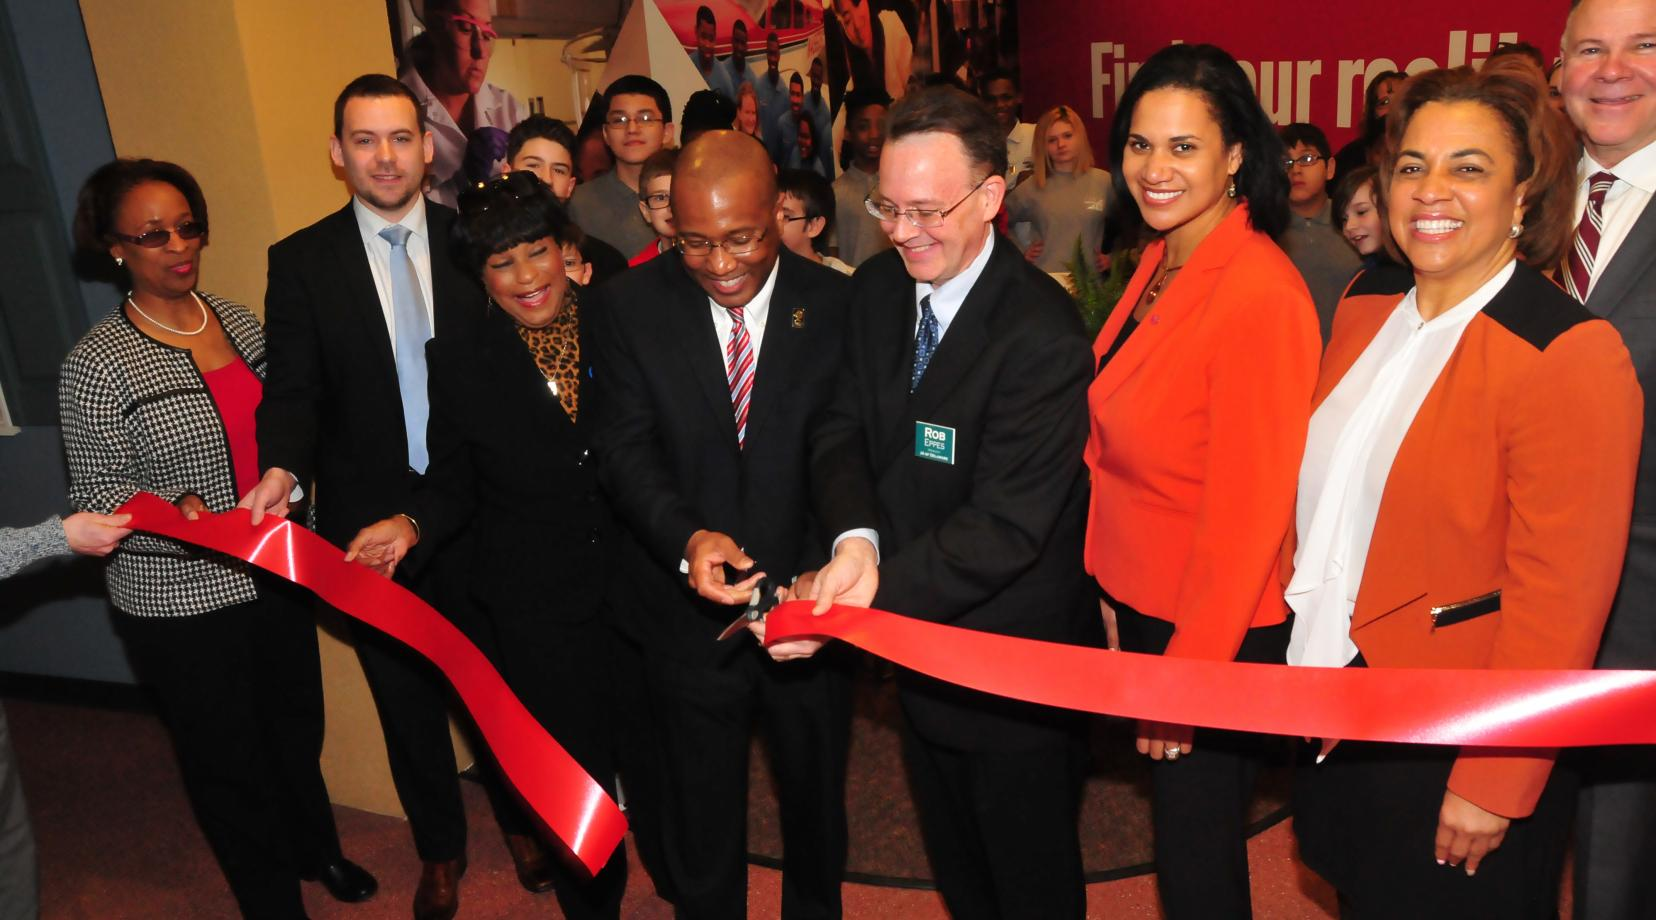 <p>Participating in the ribbon cutting of the new Delaware State University section of the Junior Achievement Financial Bank in Wilmington are: (l-r) Dr. Marshá Horton, dean of the DSU College of Education, Health and Public Policy; Bryan P. Gordon, deputy chief of staff for Lt. Gov.; state Rep. Stephanie T. Bolden; DSU President Harry L. Williams; Robert Eppes, president of Junior Achievement of Delaware; Dr. Kara Odom Walker, Secretary of Delaware Health and Social Services; Valerie Dinkins, special asst. to the DSU president; and Michael Carney, JA development director</p>